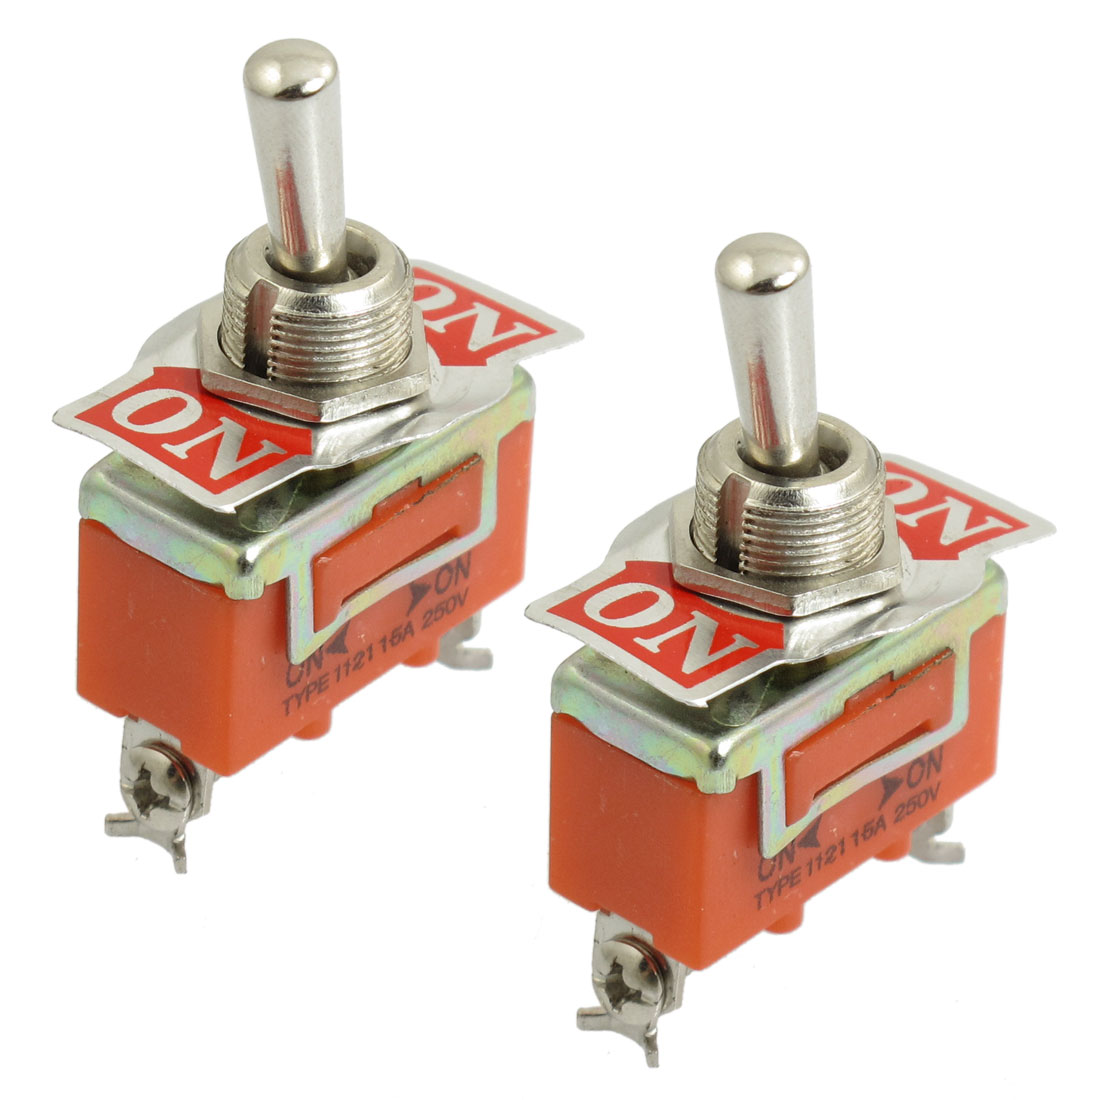 2 Pcs AC 250V 15A ON-ON 2 Position SPDT 3 Screws Terminals Toggle Swith